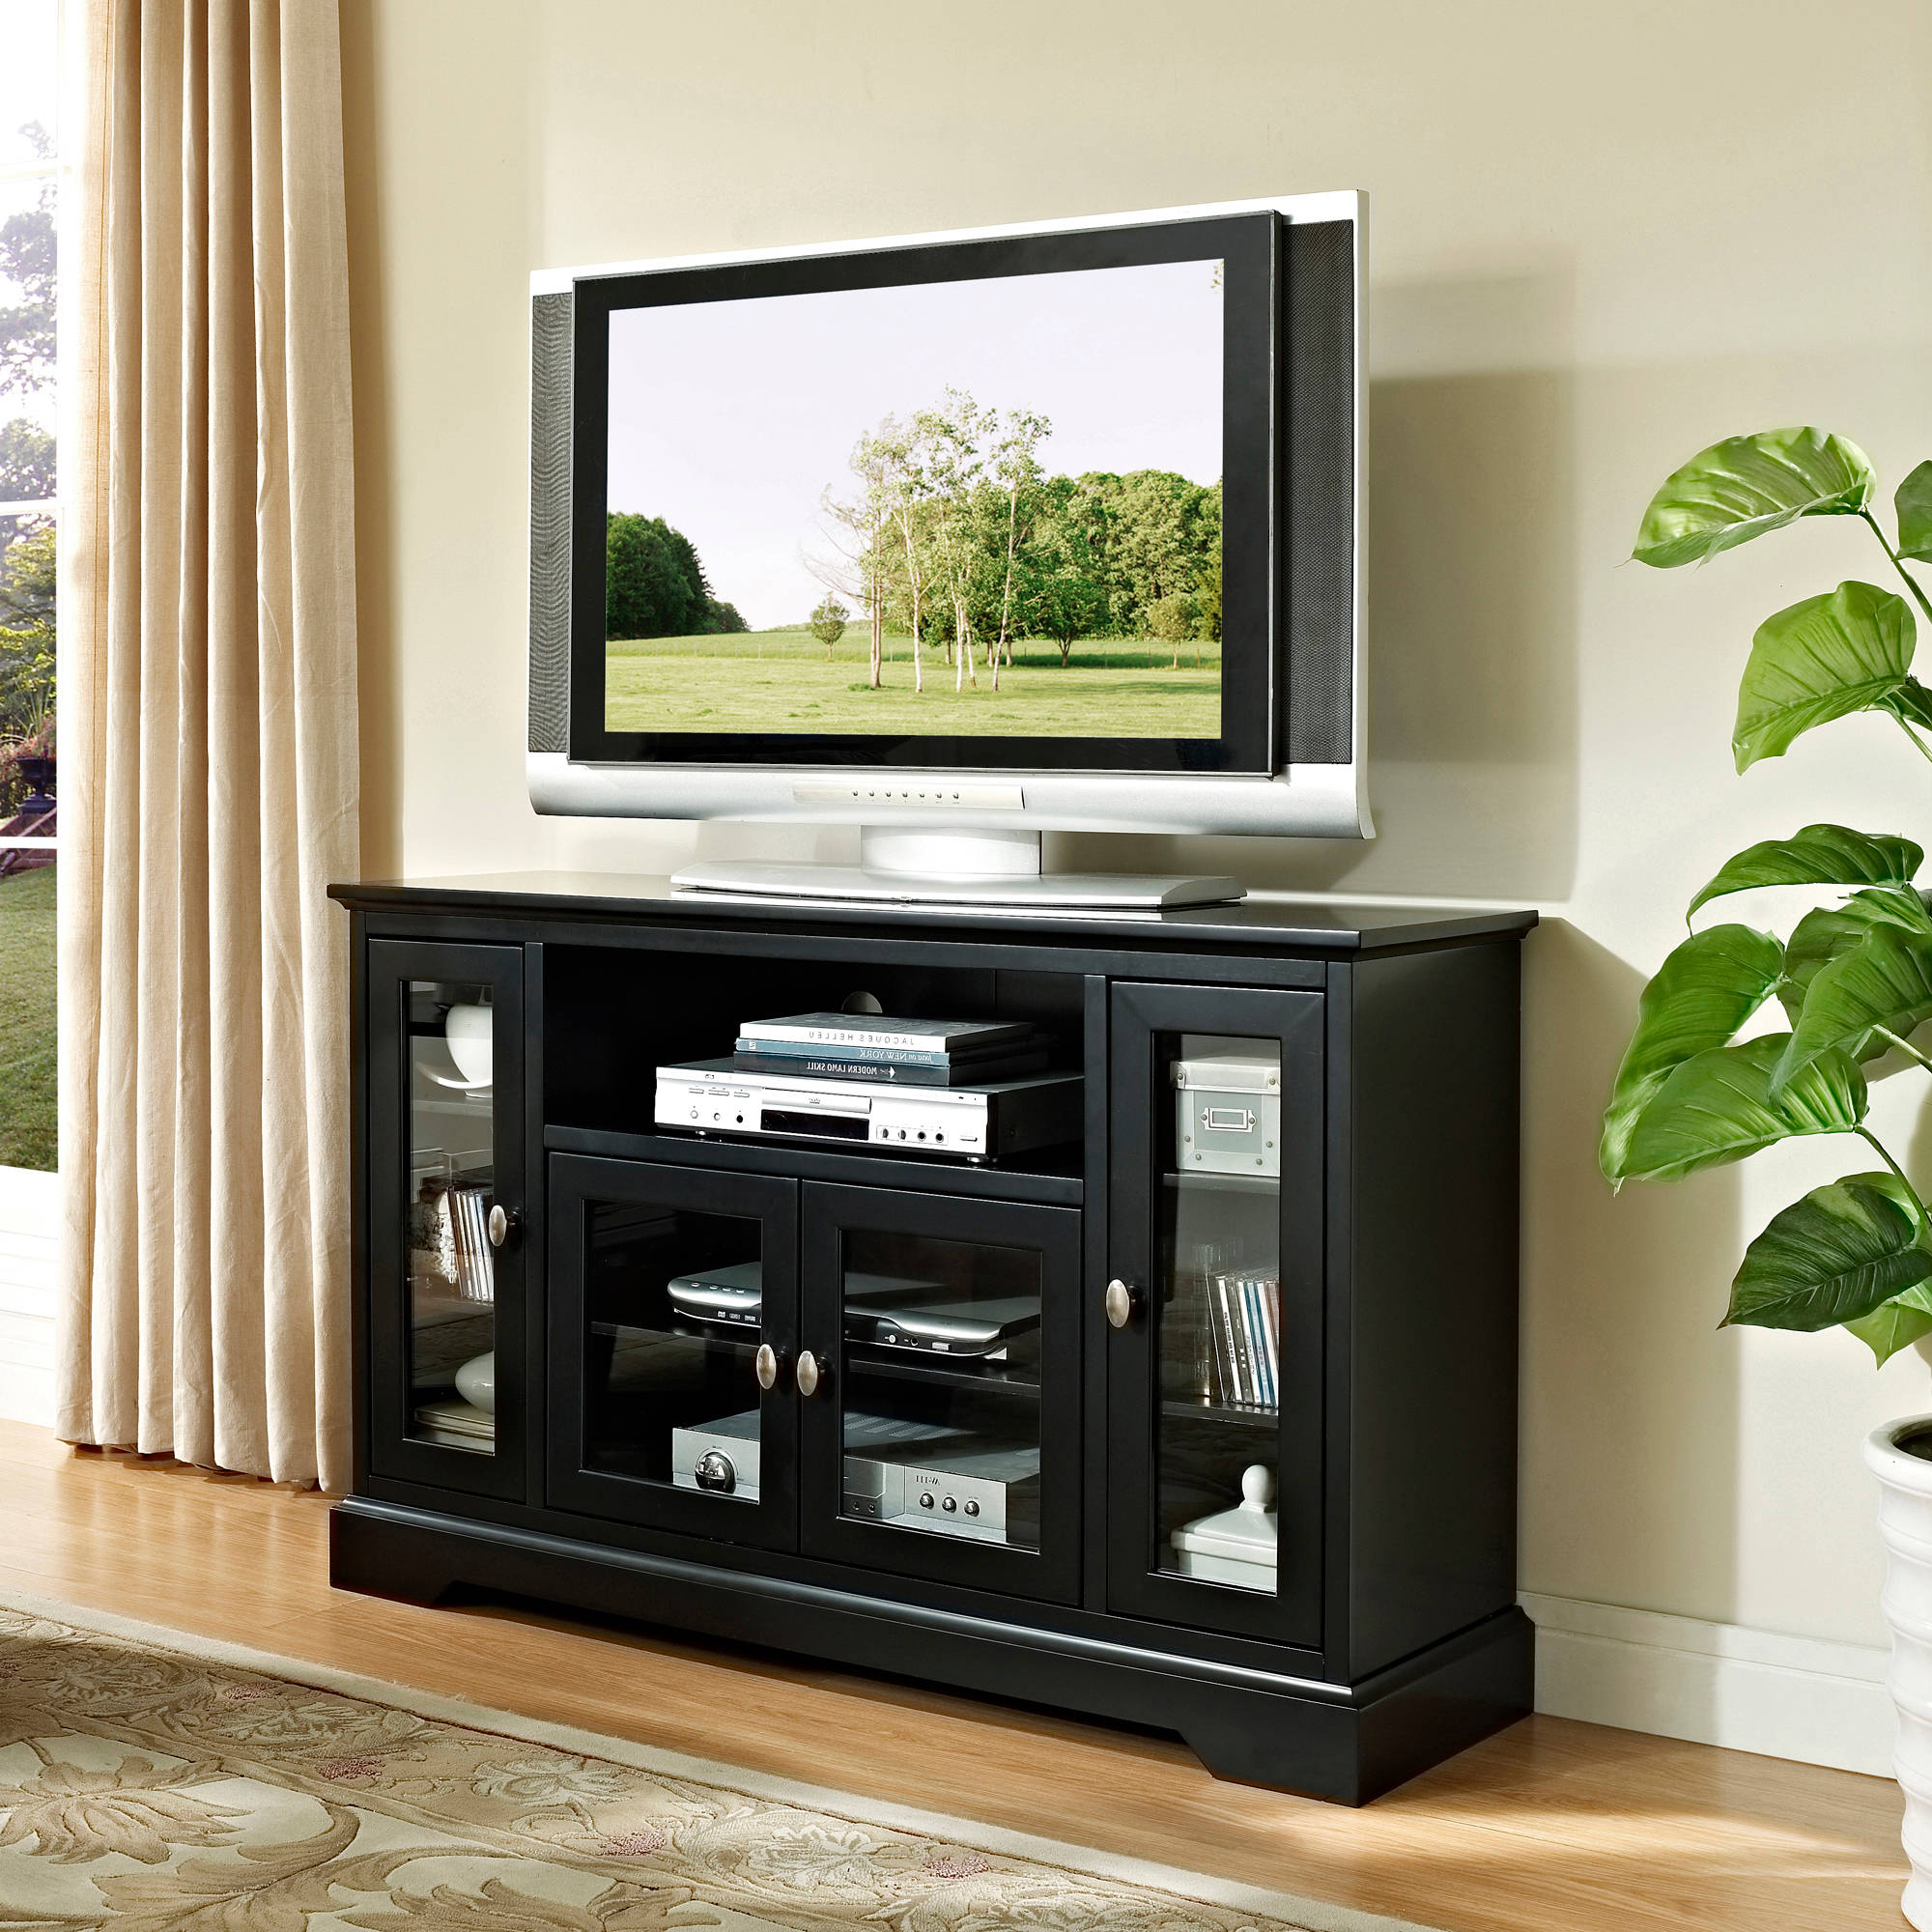 Tall Black Tv Cabinets Intended For Trendy Walker Edison Highboy Style Wood Media Storage Tv Stand Console For (View 5 of 20)